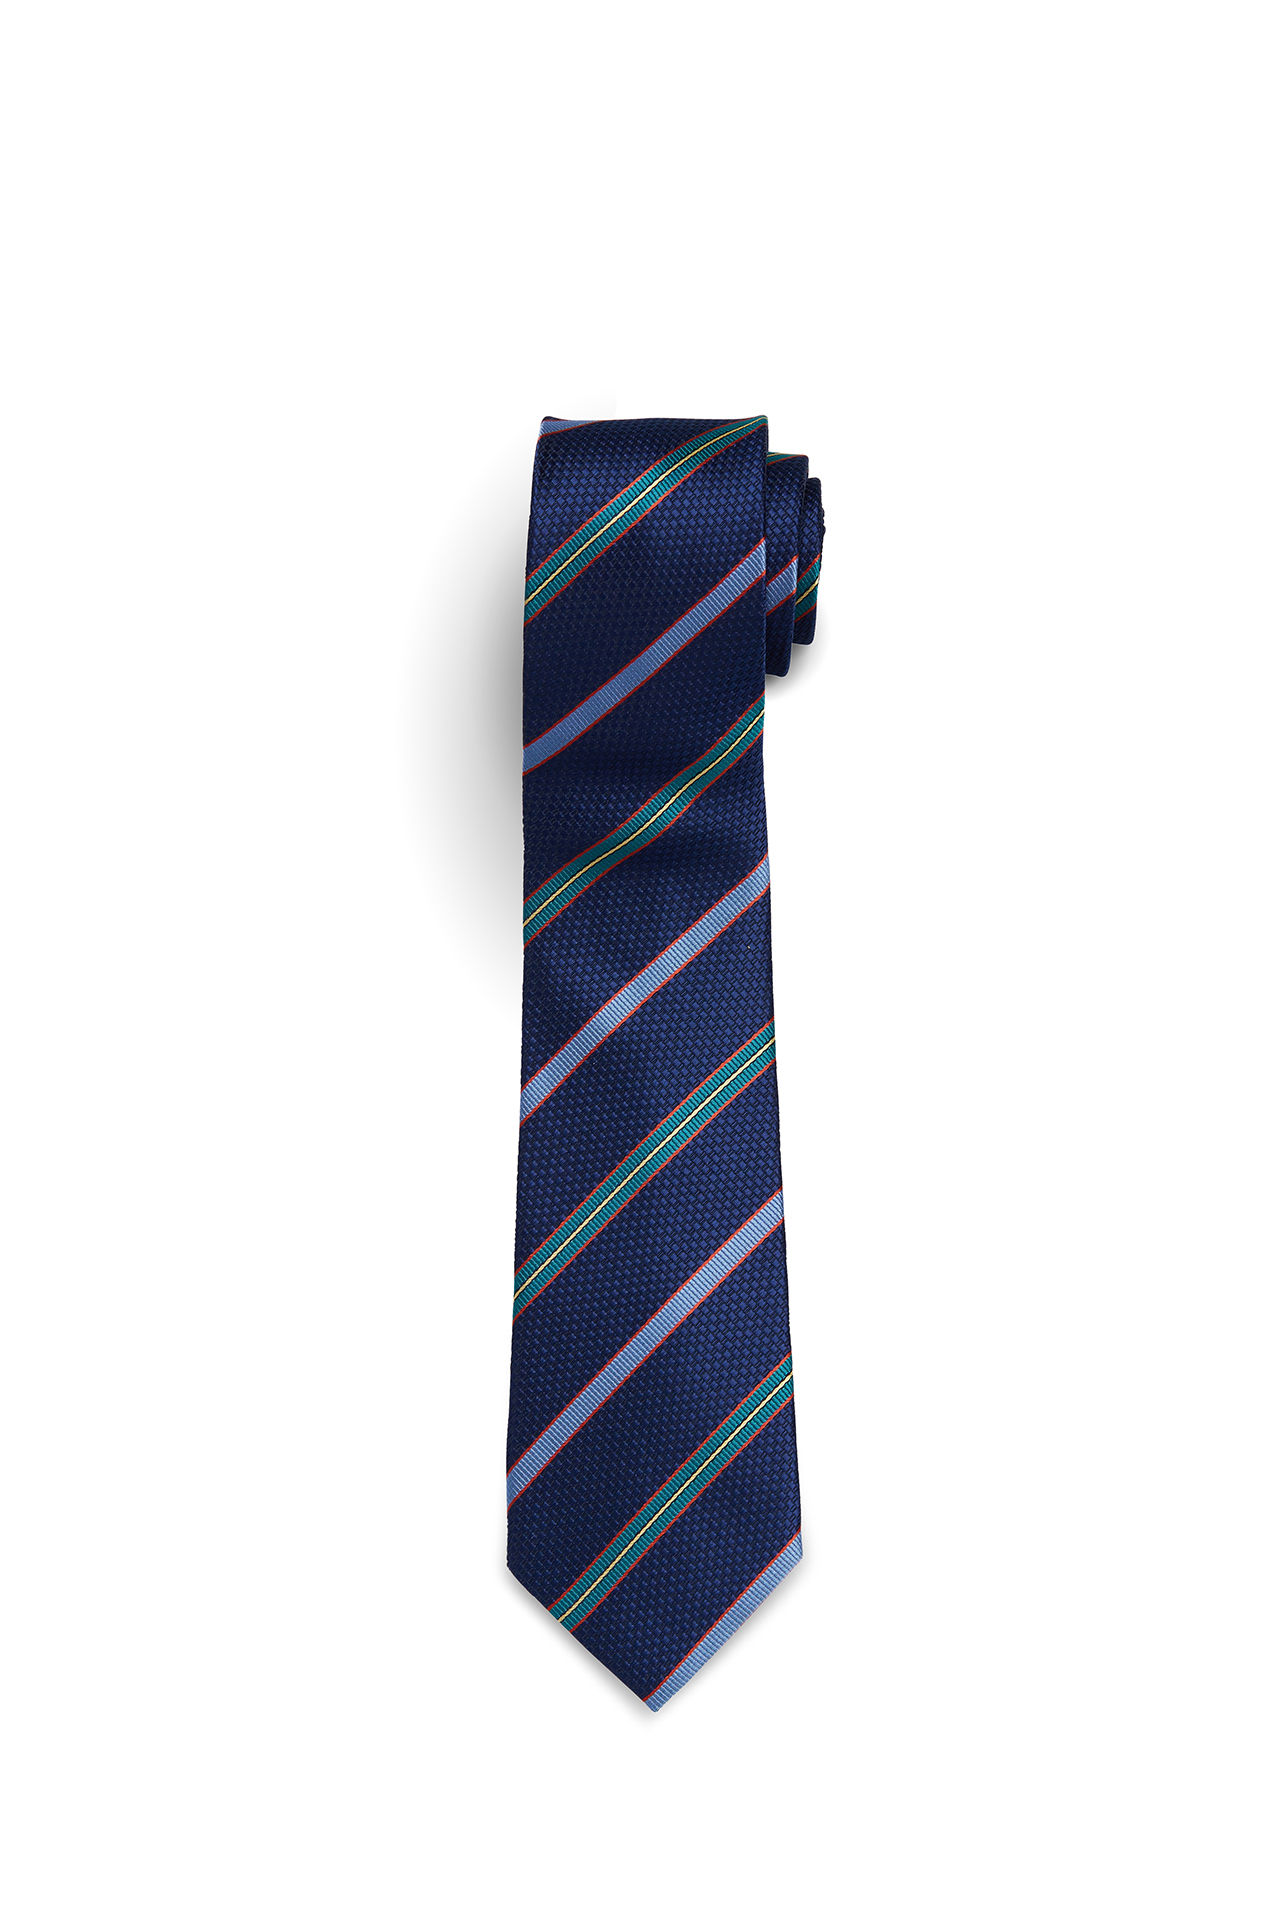 Navy with Red, Green and Celeste Blue Stripe Tie